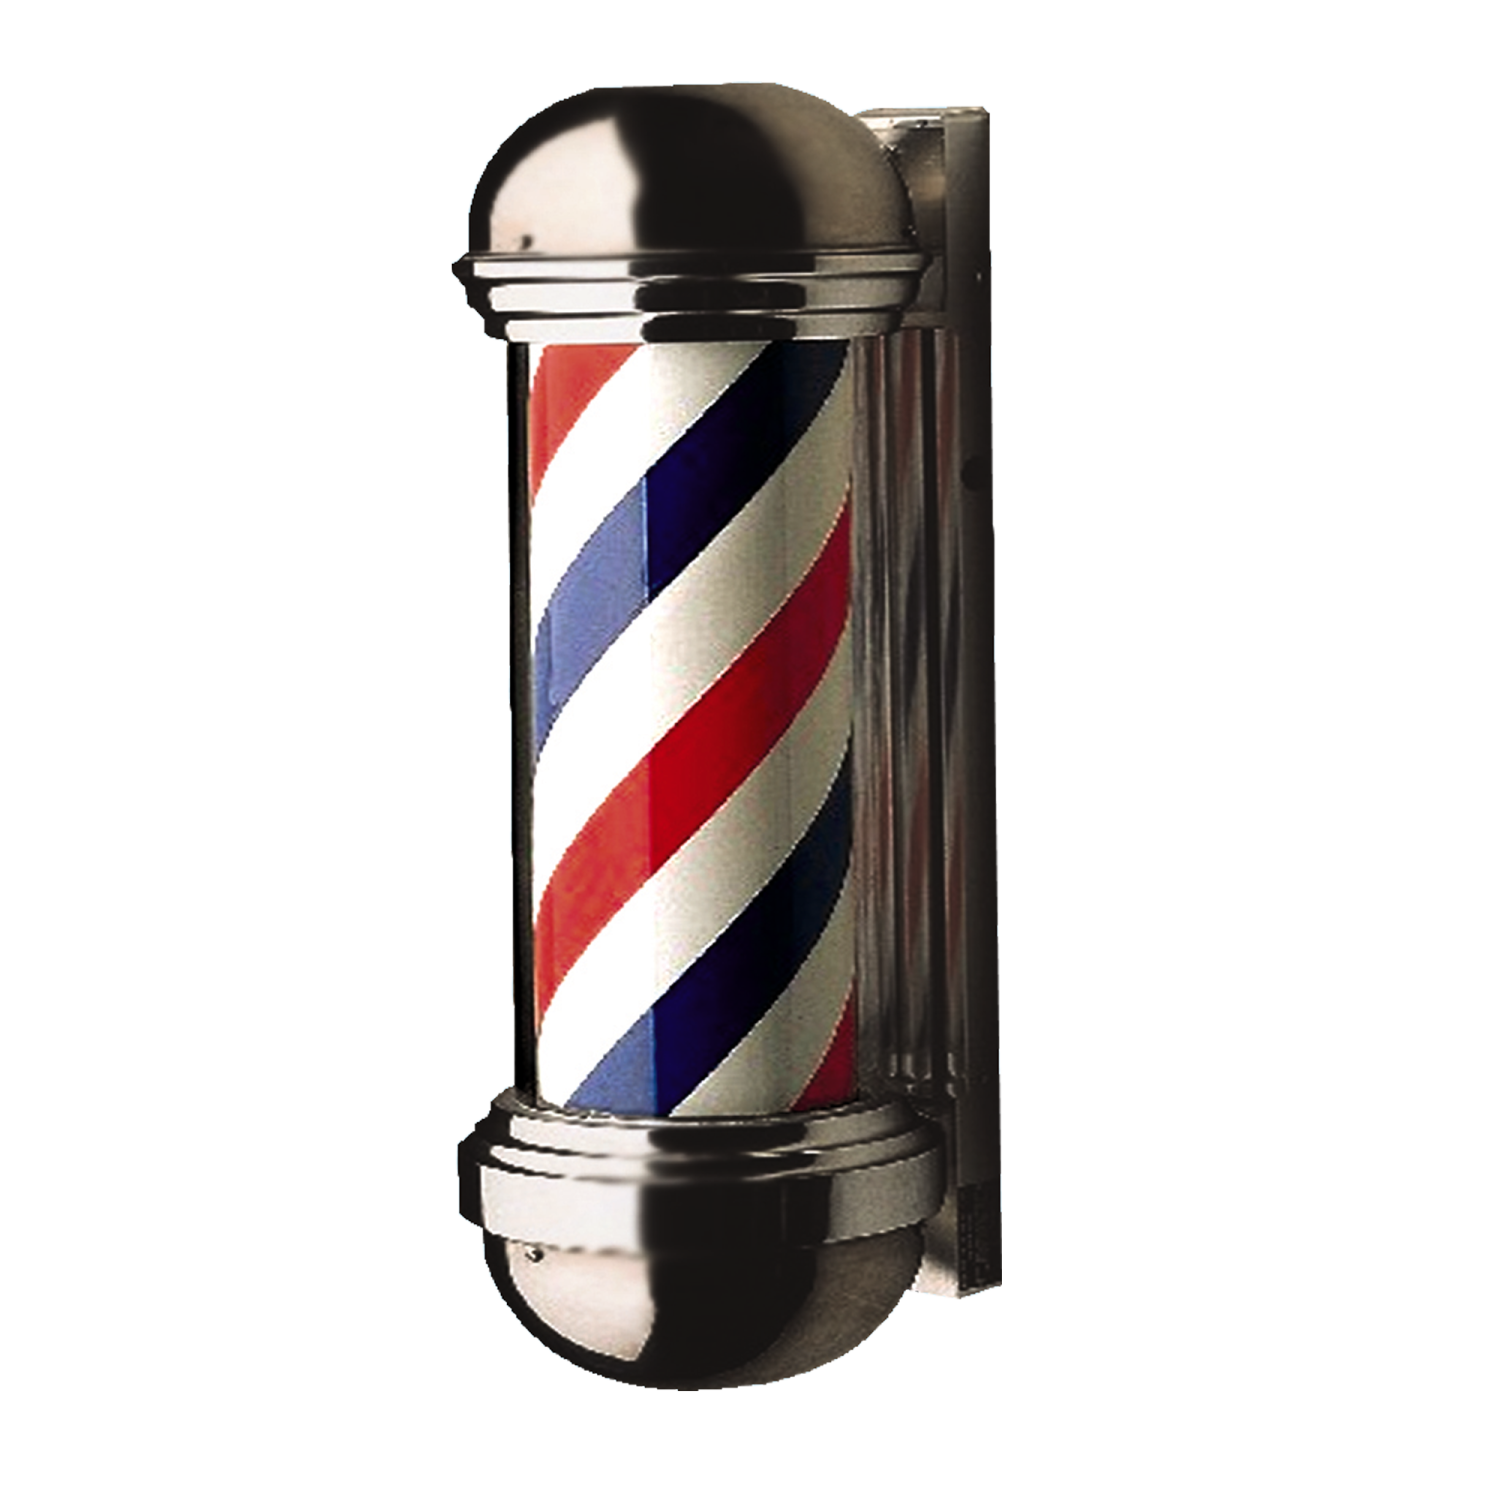 Get free high quality HD wallpapers barber shop logo - Barber PNG HD